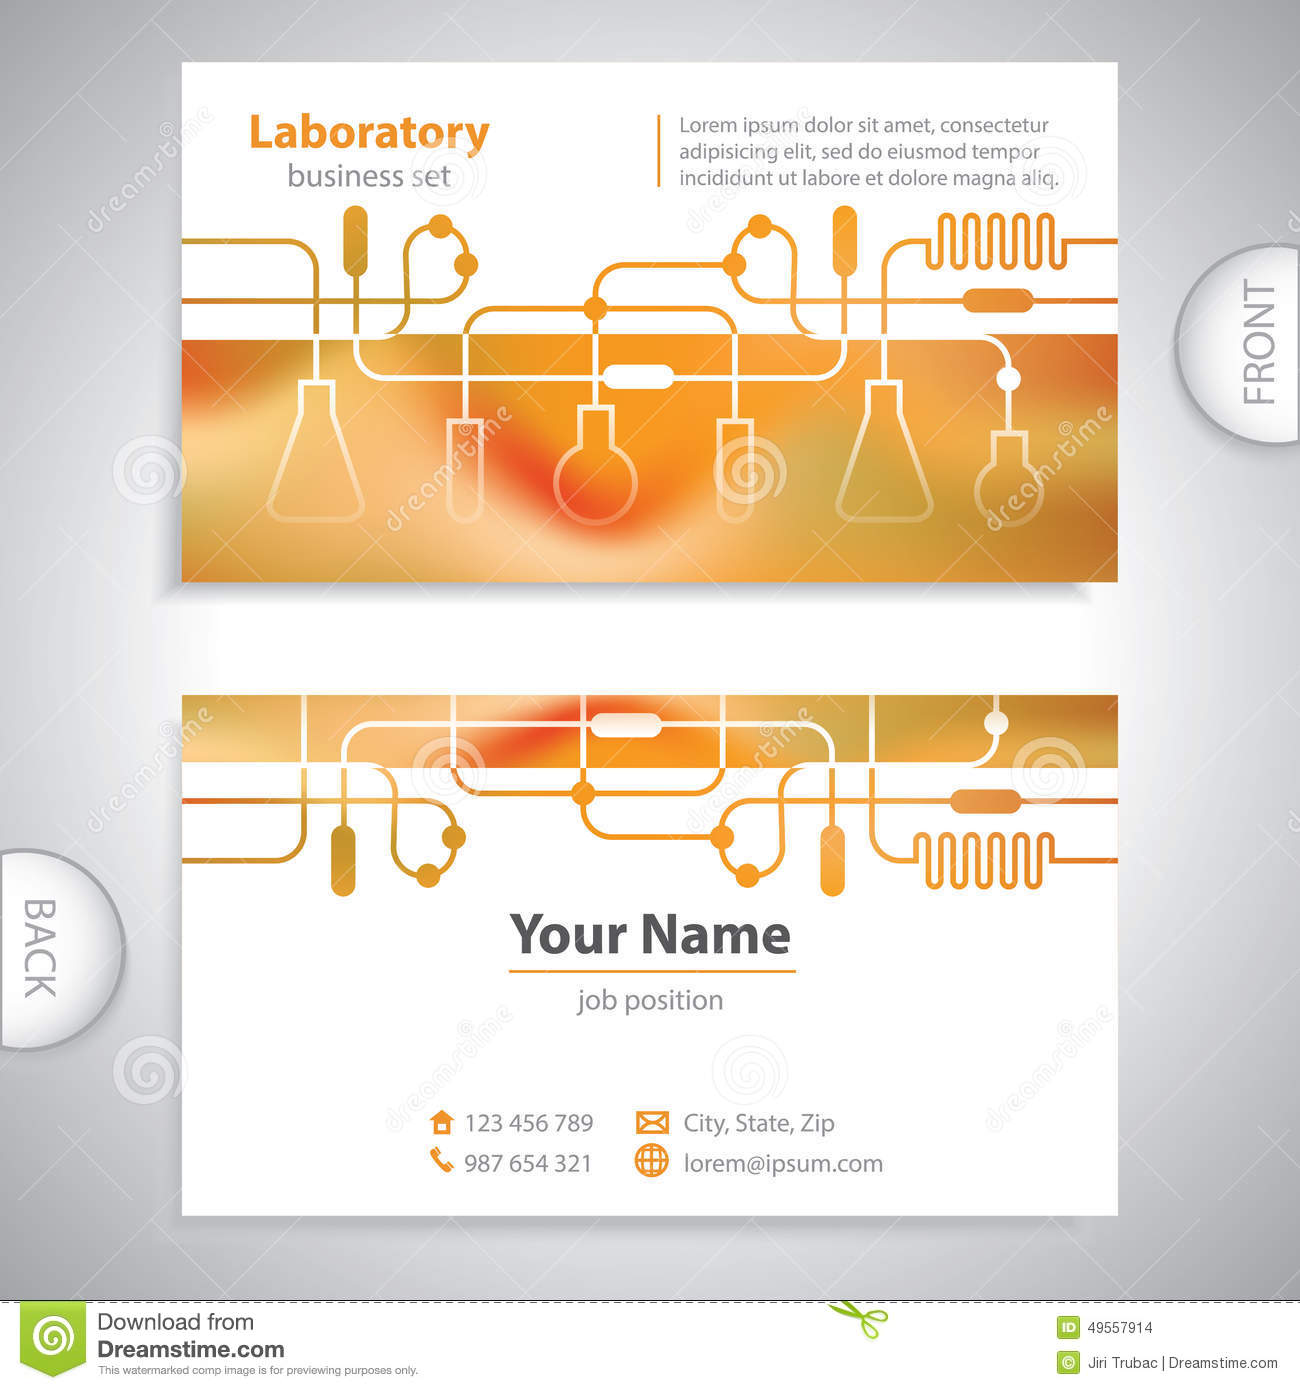 How to Write a Laboratory Business Plan